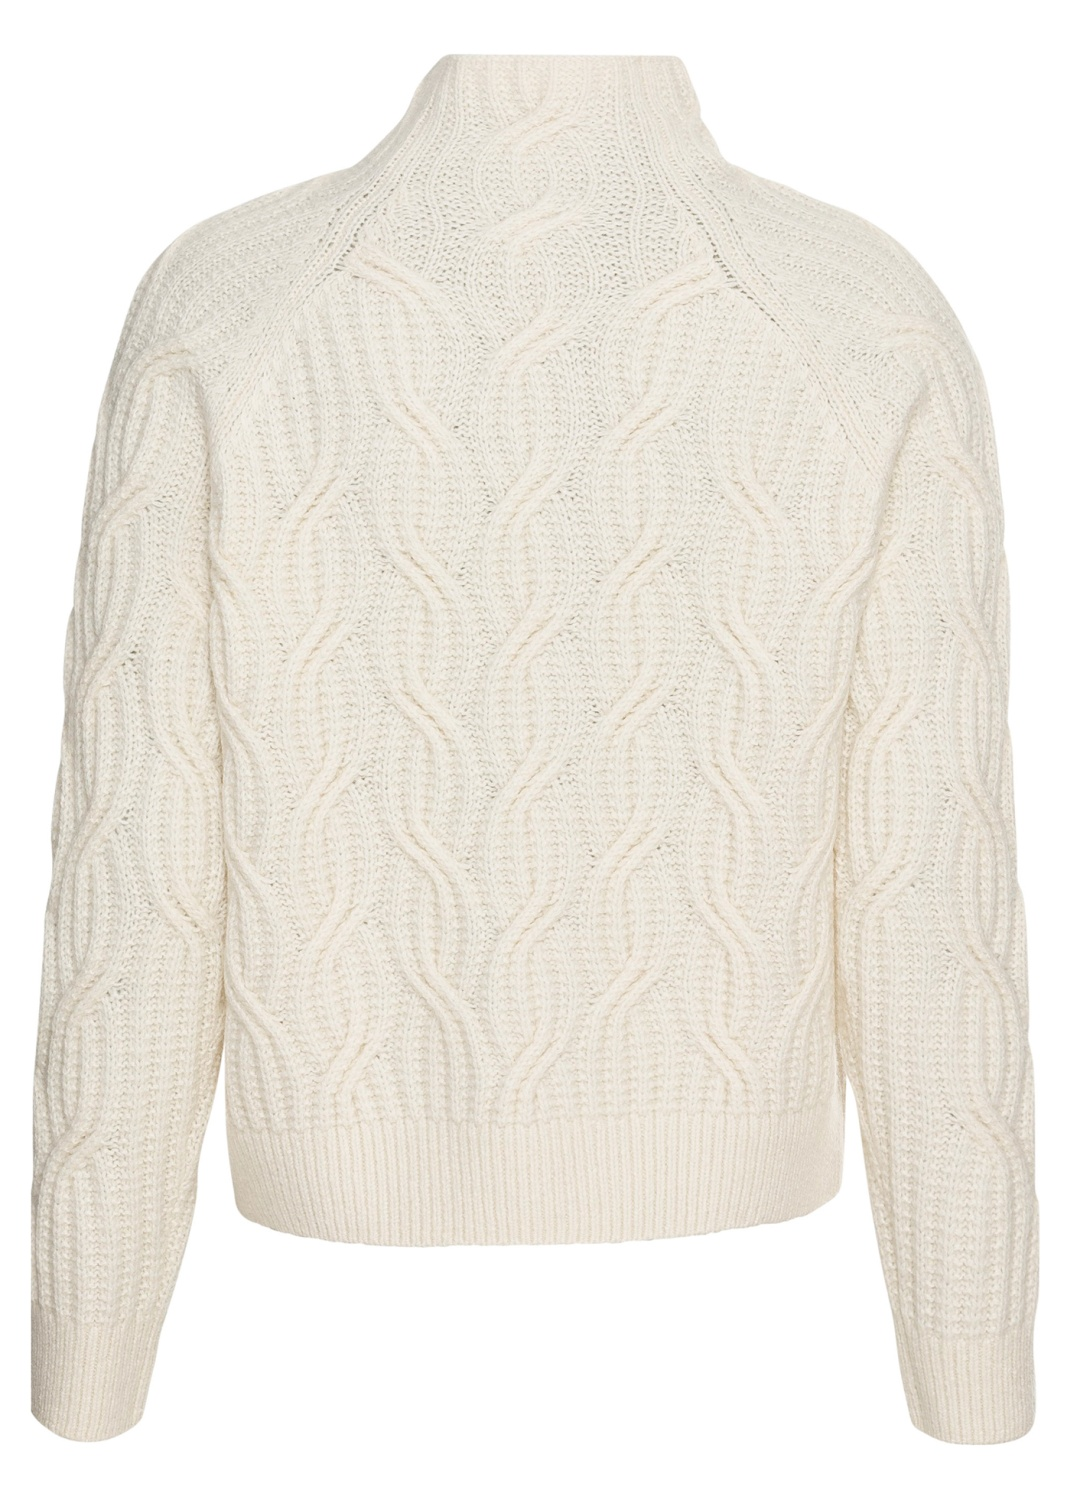 TEXTURE CABLE TURTLENECK image number 1